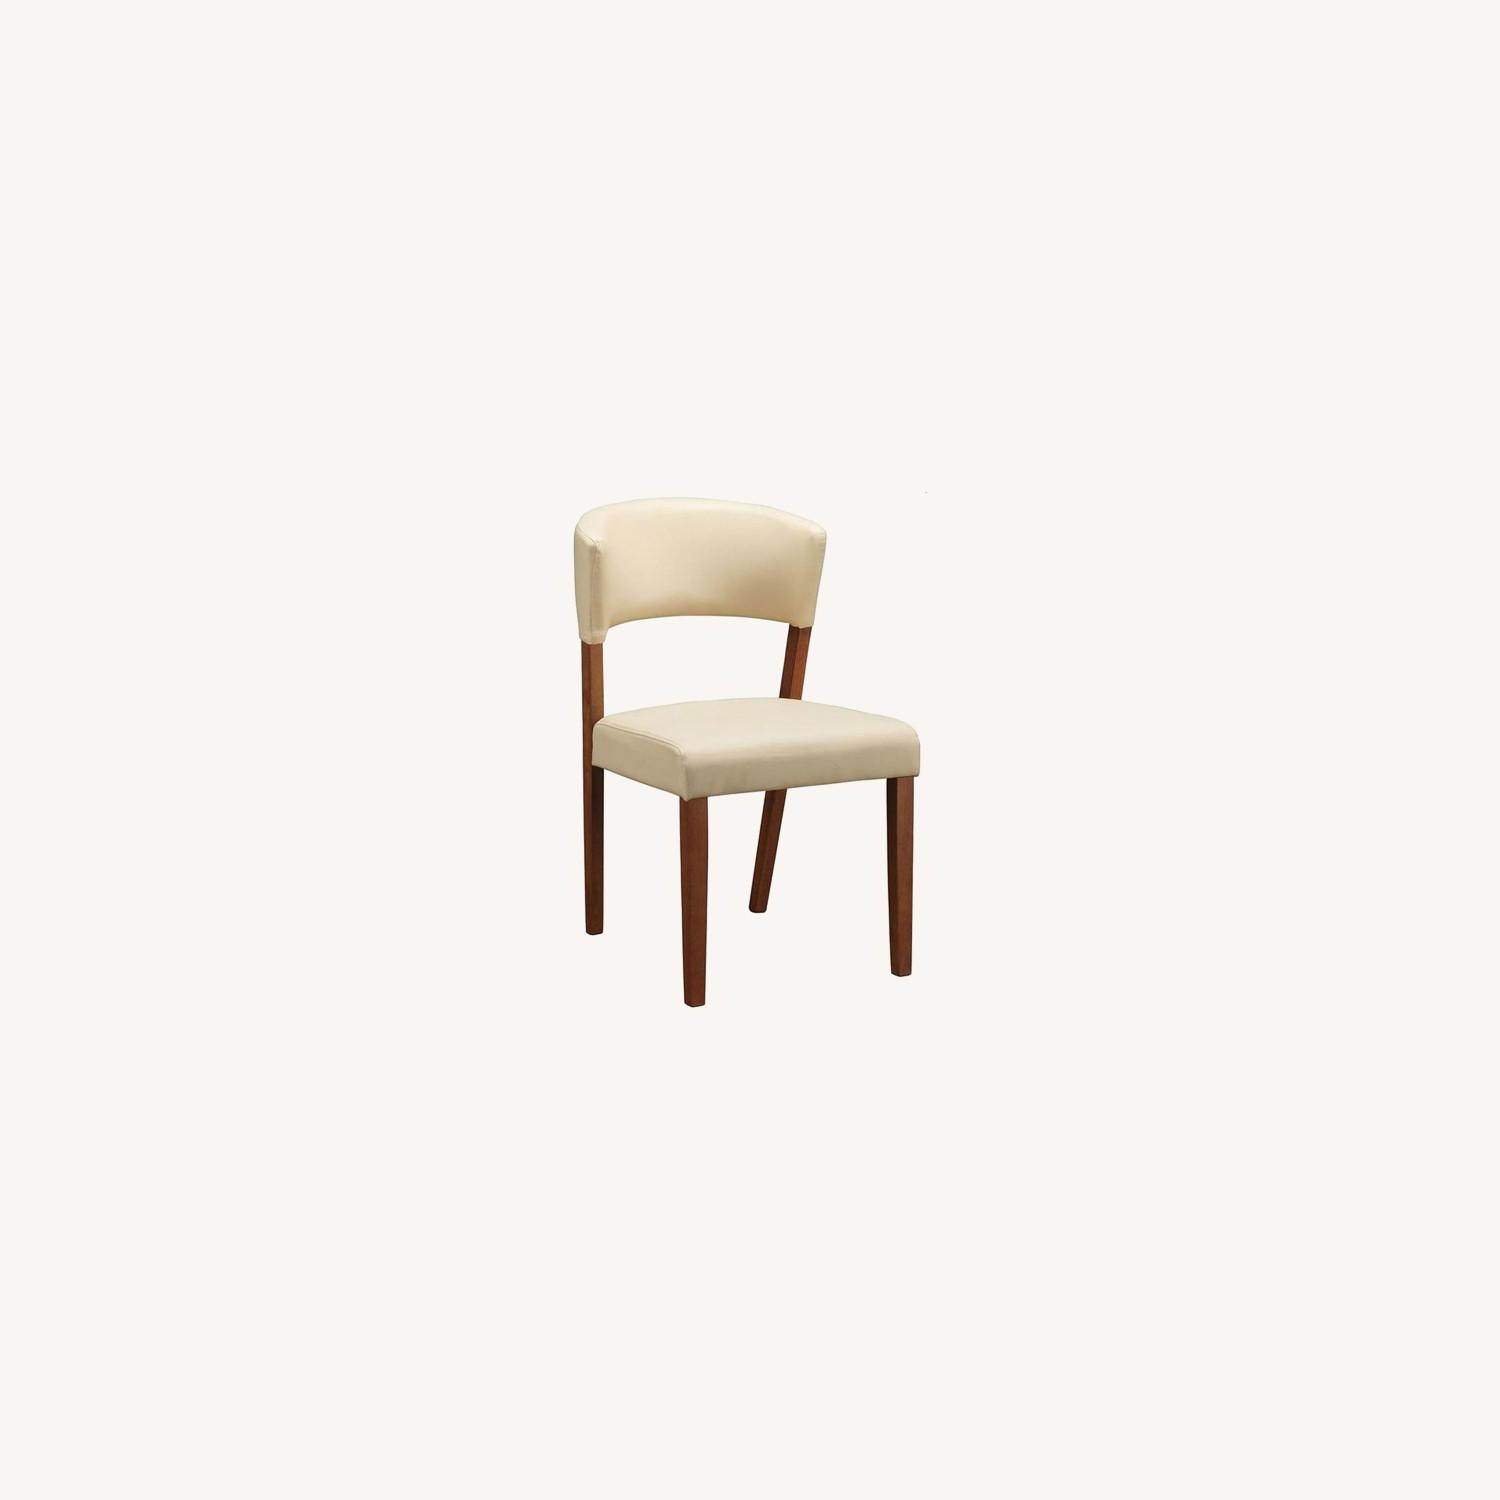 Retro Side Chair In Nutmeg & Cream Leatherette - image-0